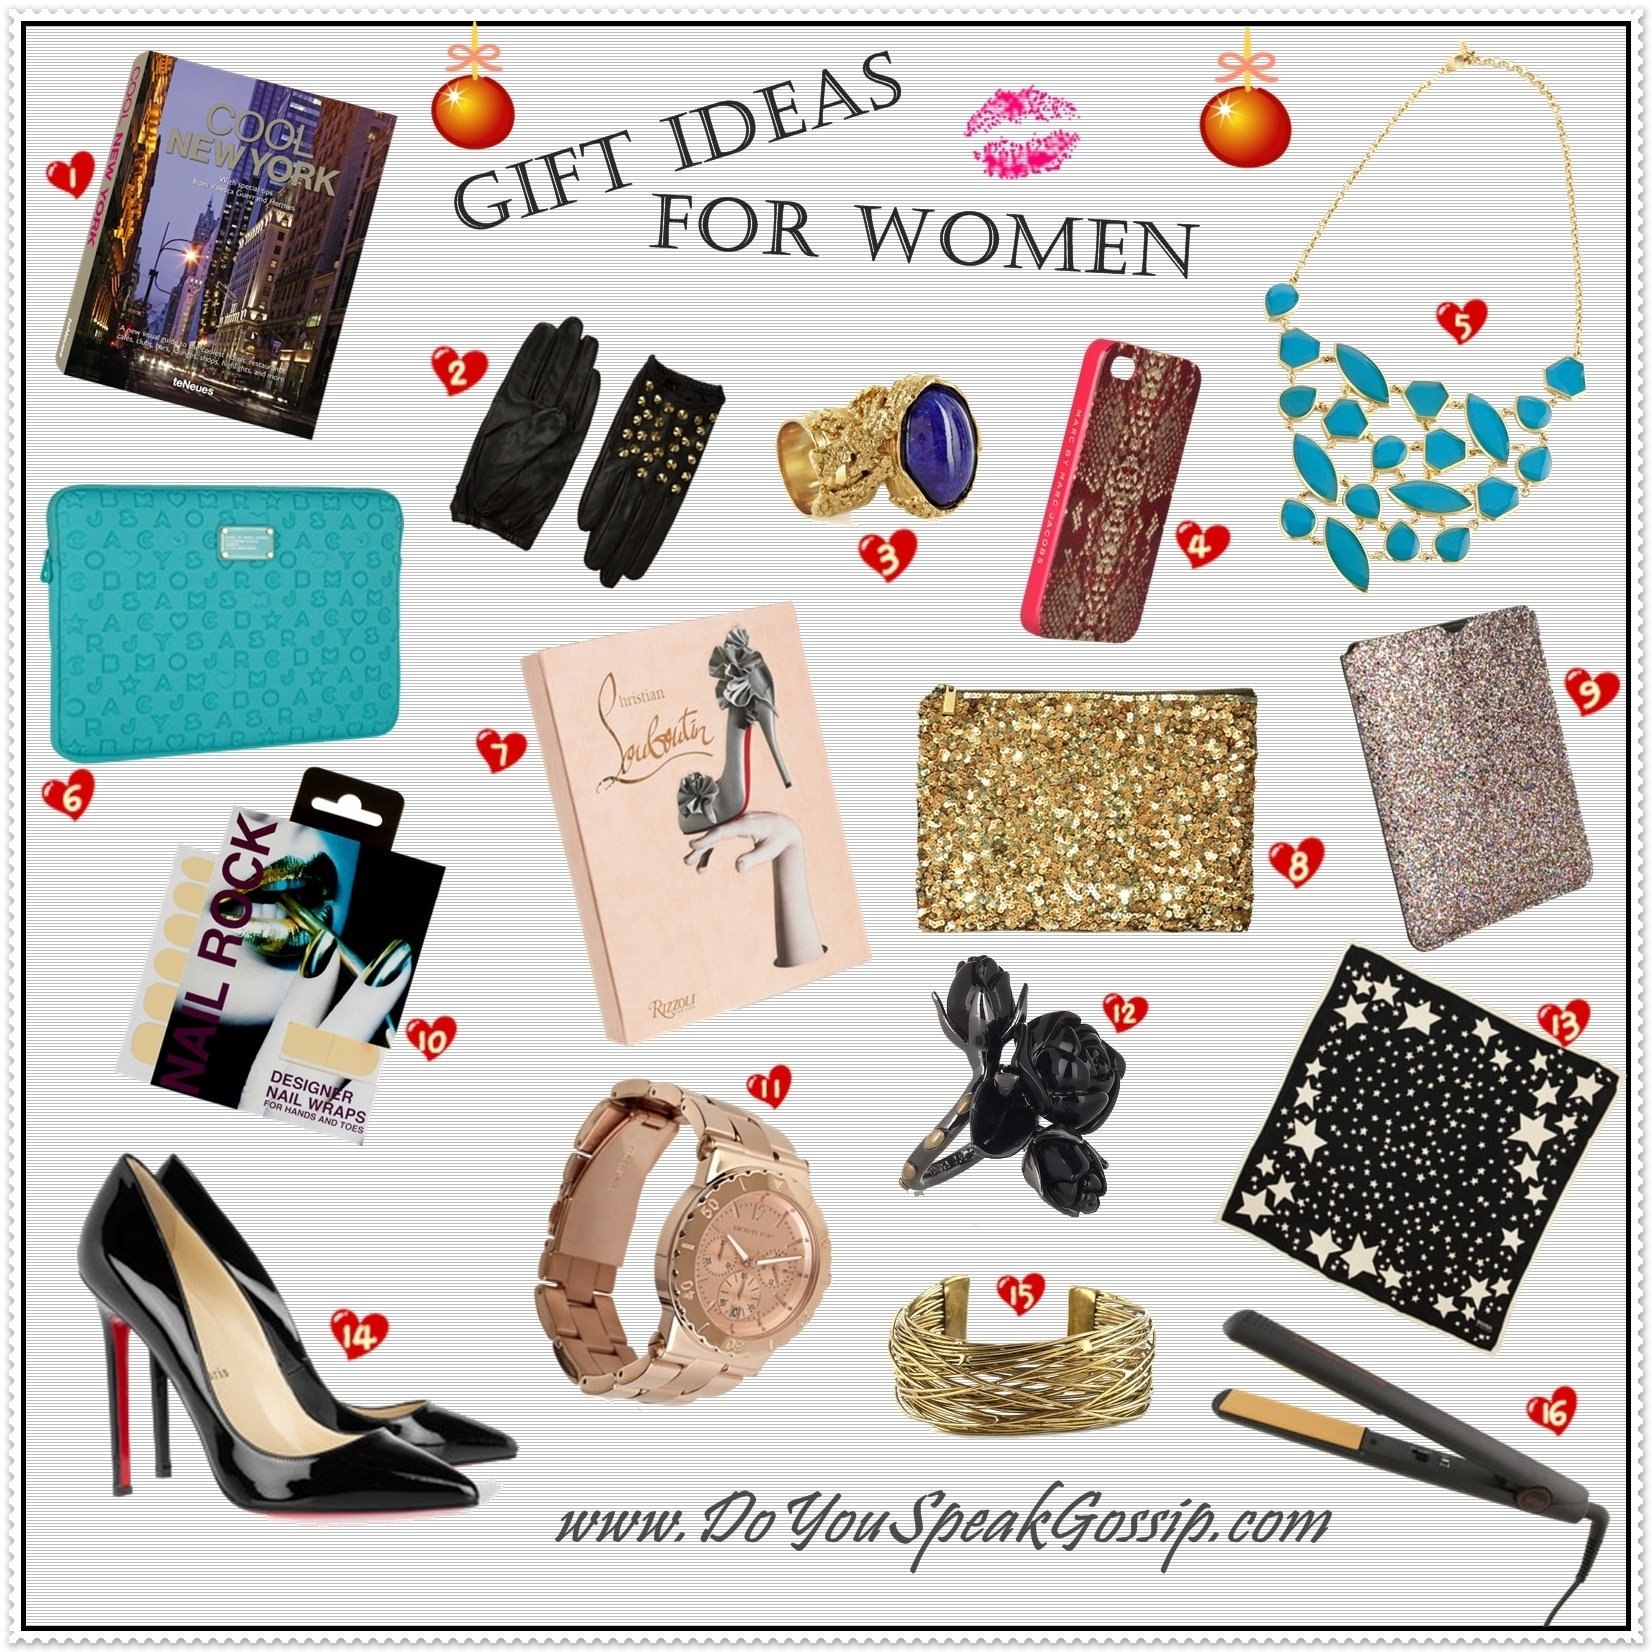 10 Unique Gift Ideas For Women Over 40 gift ideas for women do you speak gossipdo you speak gossip 5